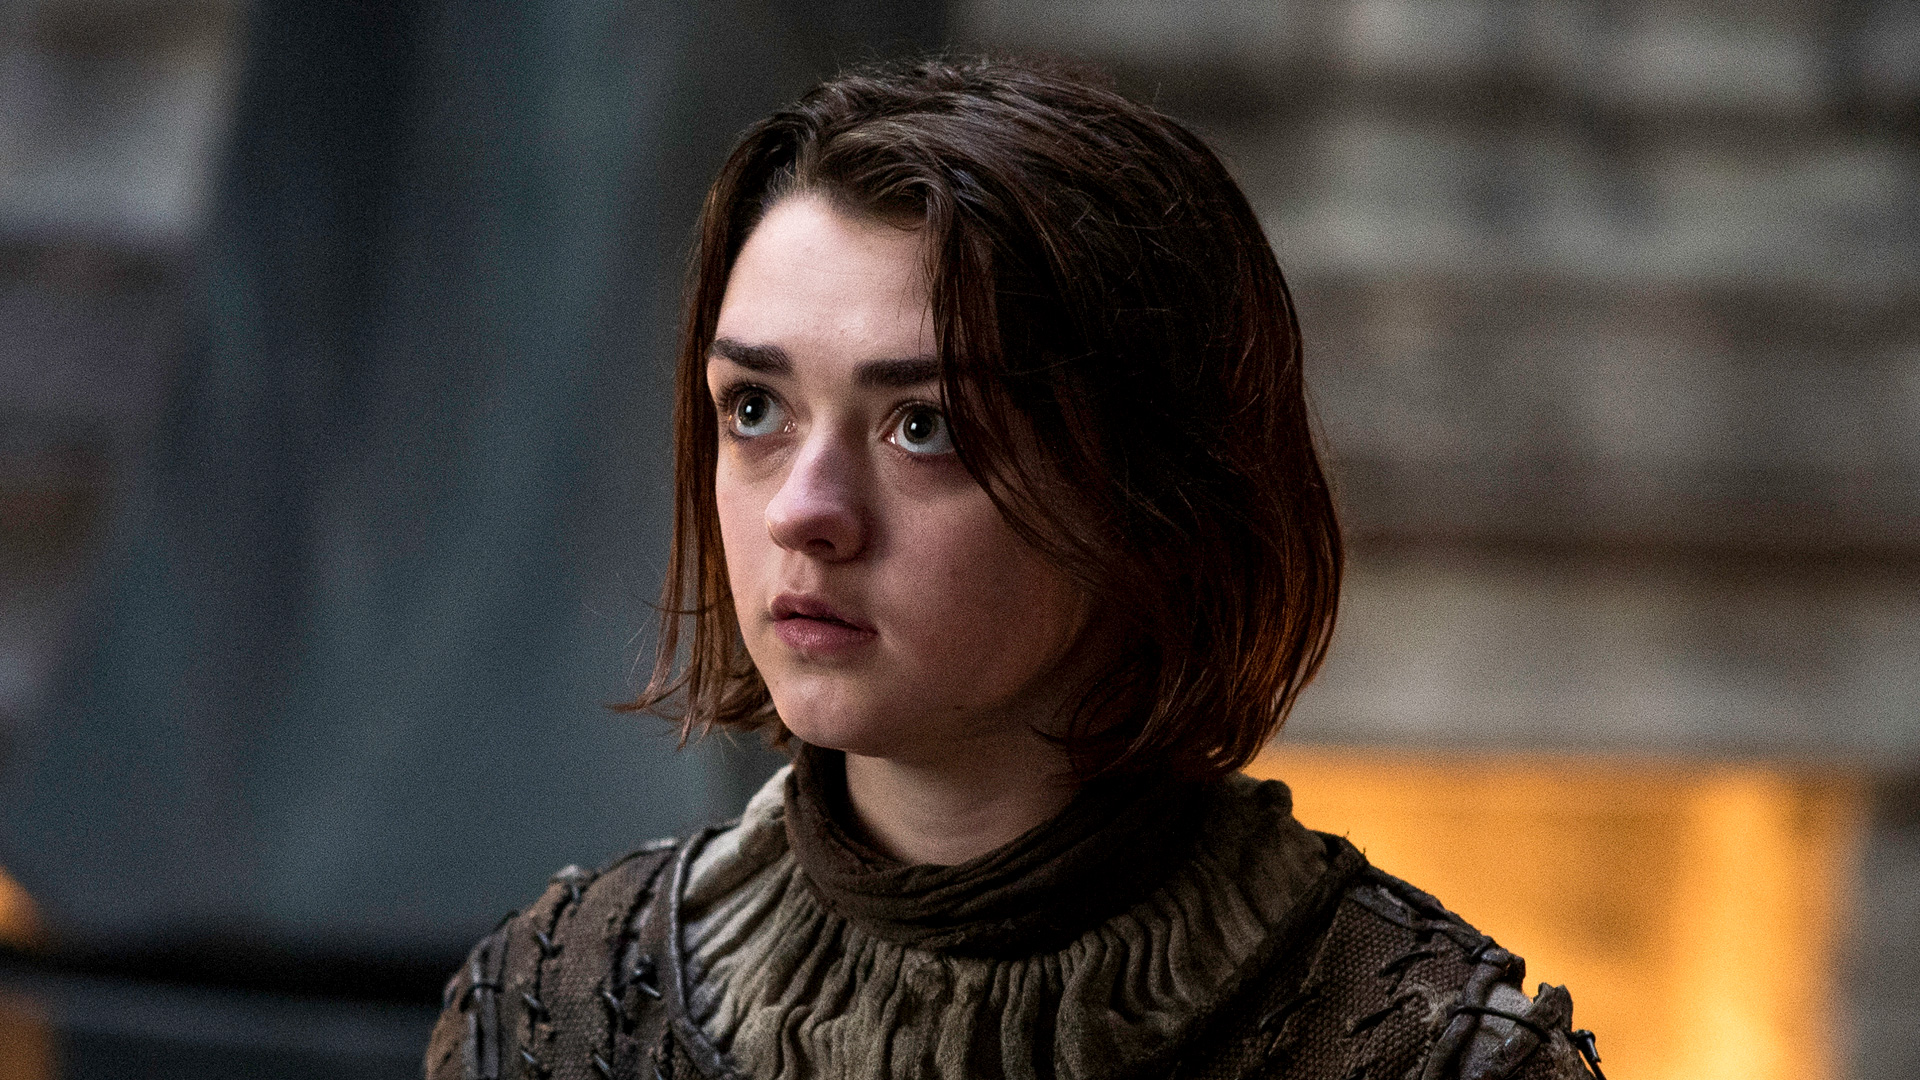 Reported Game of Thrones Season 8 Premiere Date 'Completely False'